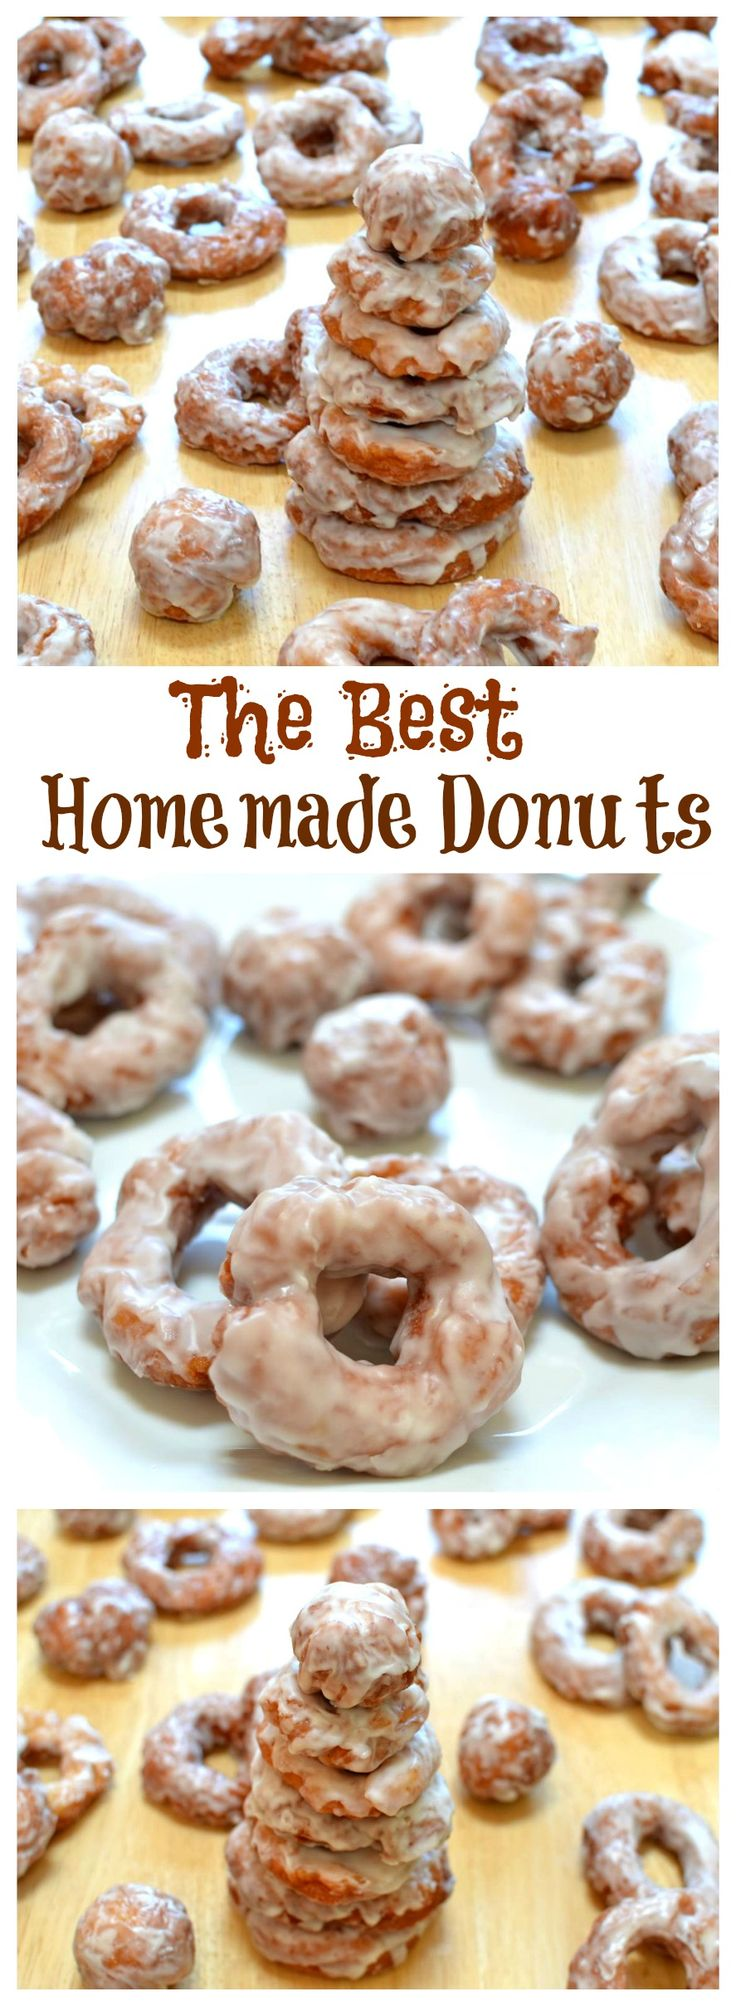 You'll never try another donut recipe again once you taste these, a fun afternoon project with a sweet reward! #Donuts #Breakfast